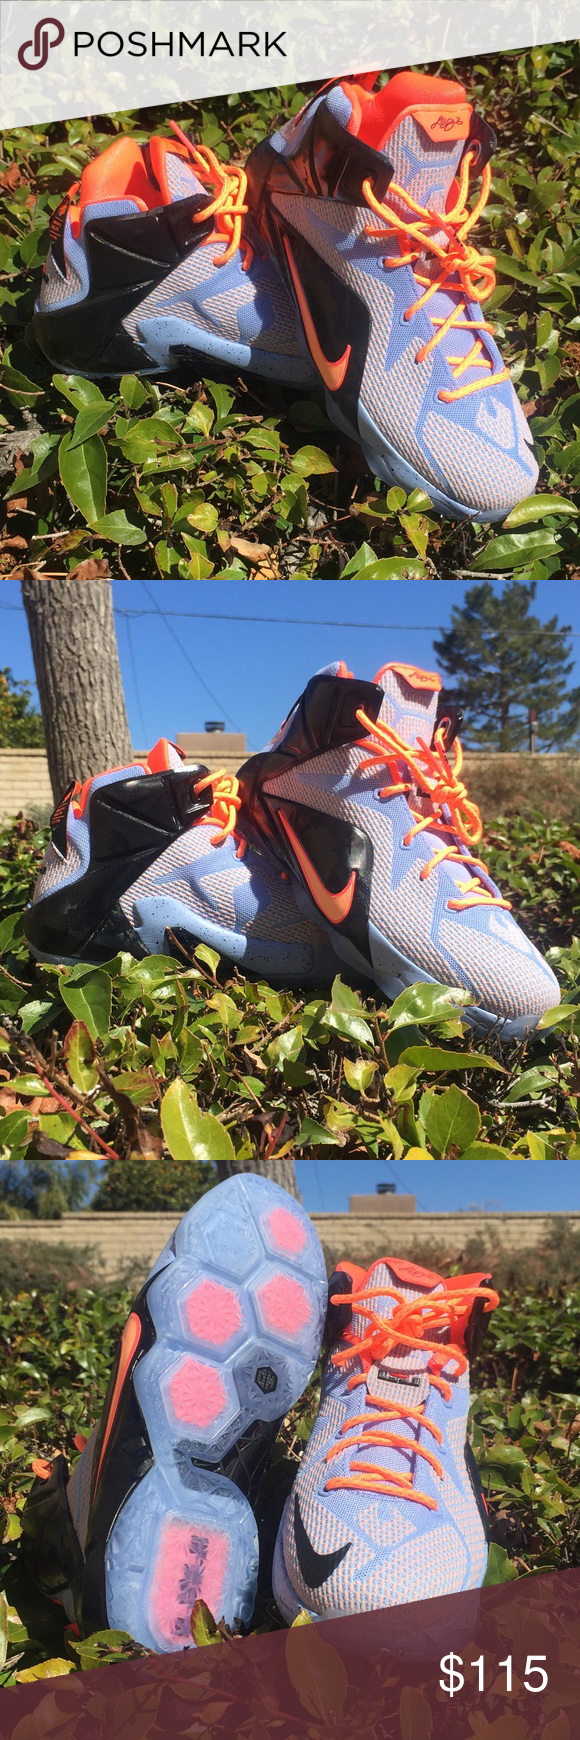 6d357680372 Nike Lebron James Brand new. Nike LeBron James 12. Youth size 5.5   7  available. Aluminum sunset and glow black colorway. Awesome basketball or  everyday ...